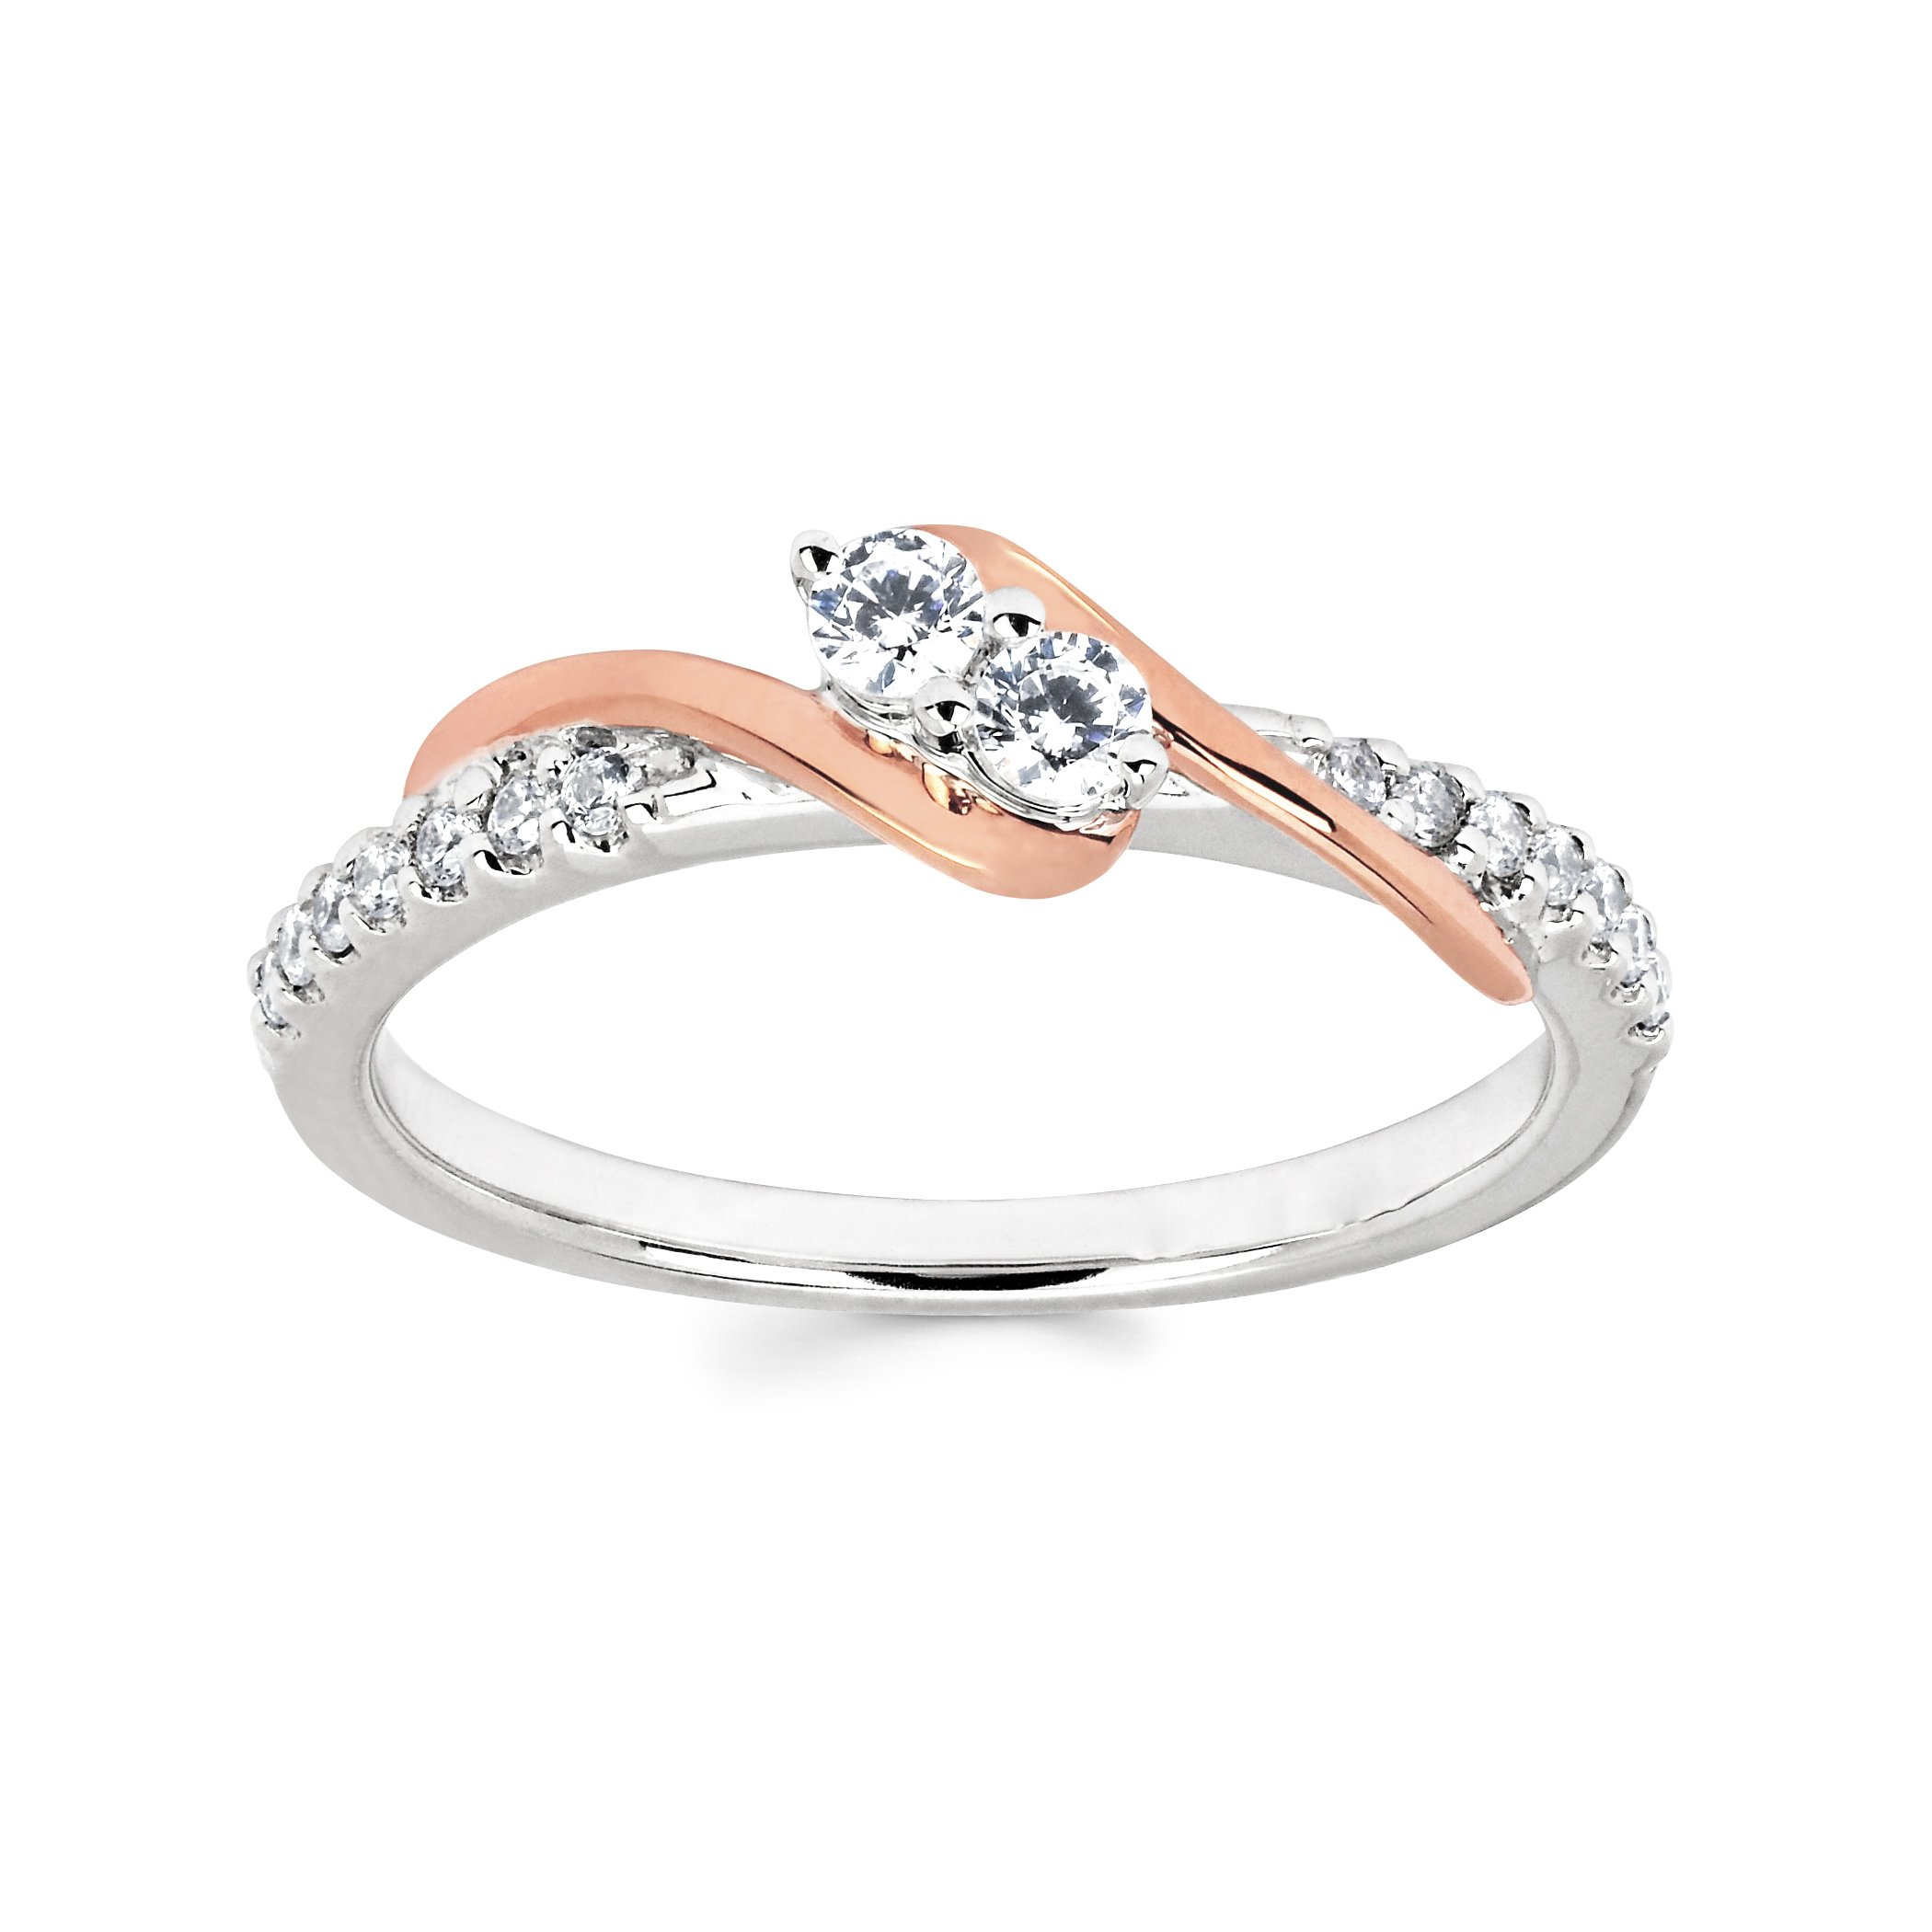 Boston Bay Diamonds 10K White and Rose Gold Diamond Two Stone Promise Ring (1/4 cttw, I Color, I1 Clarity)